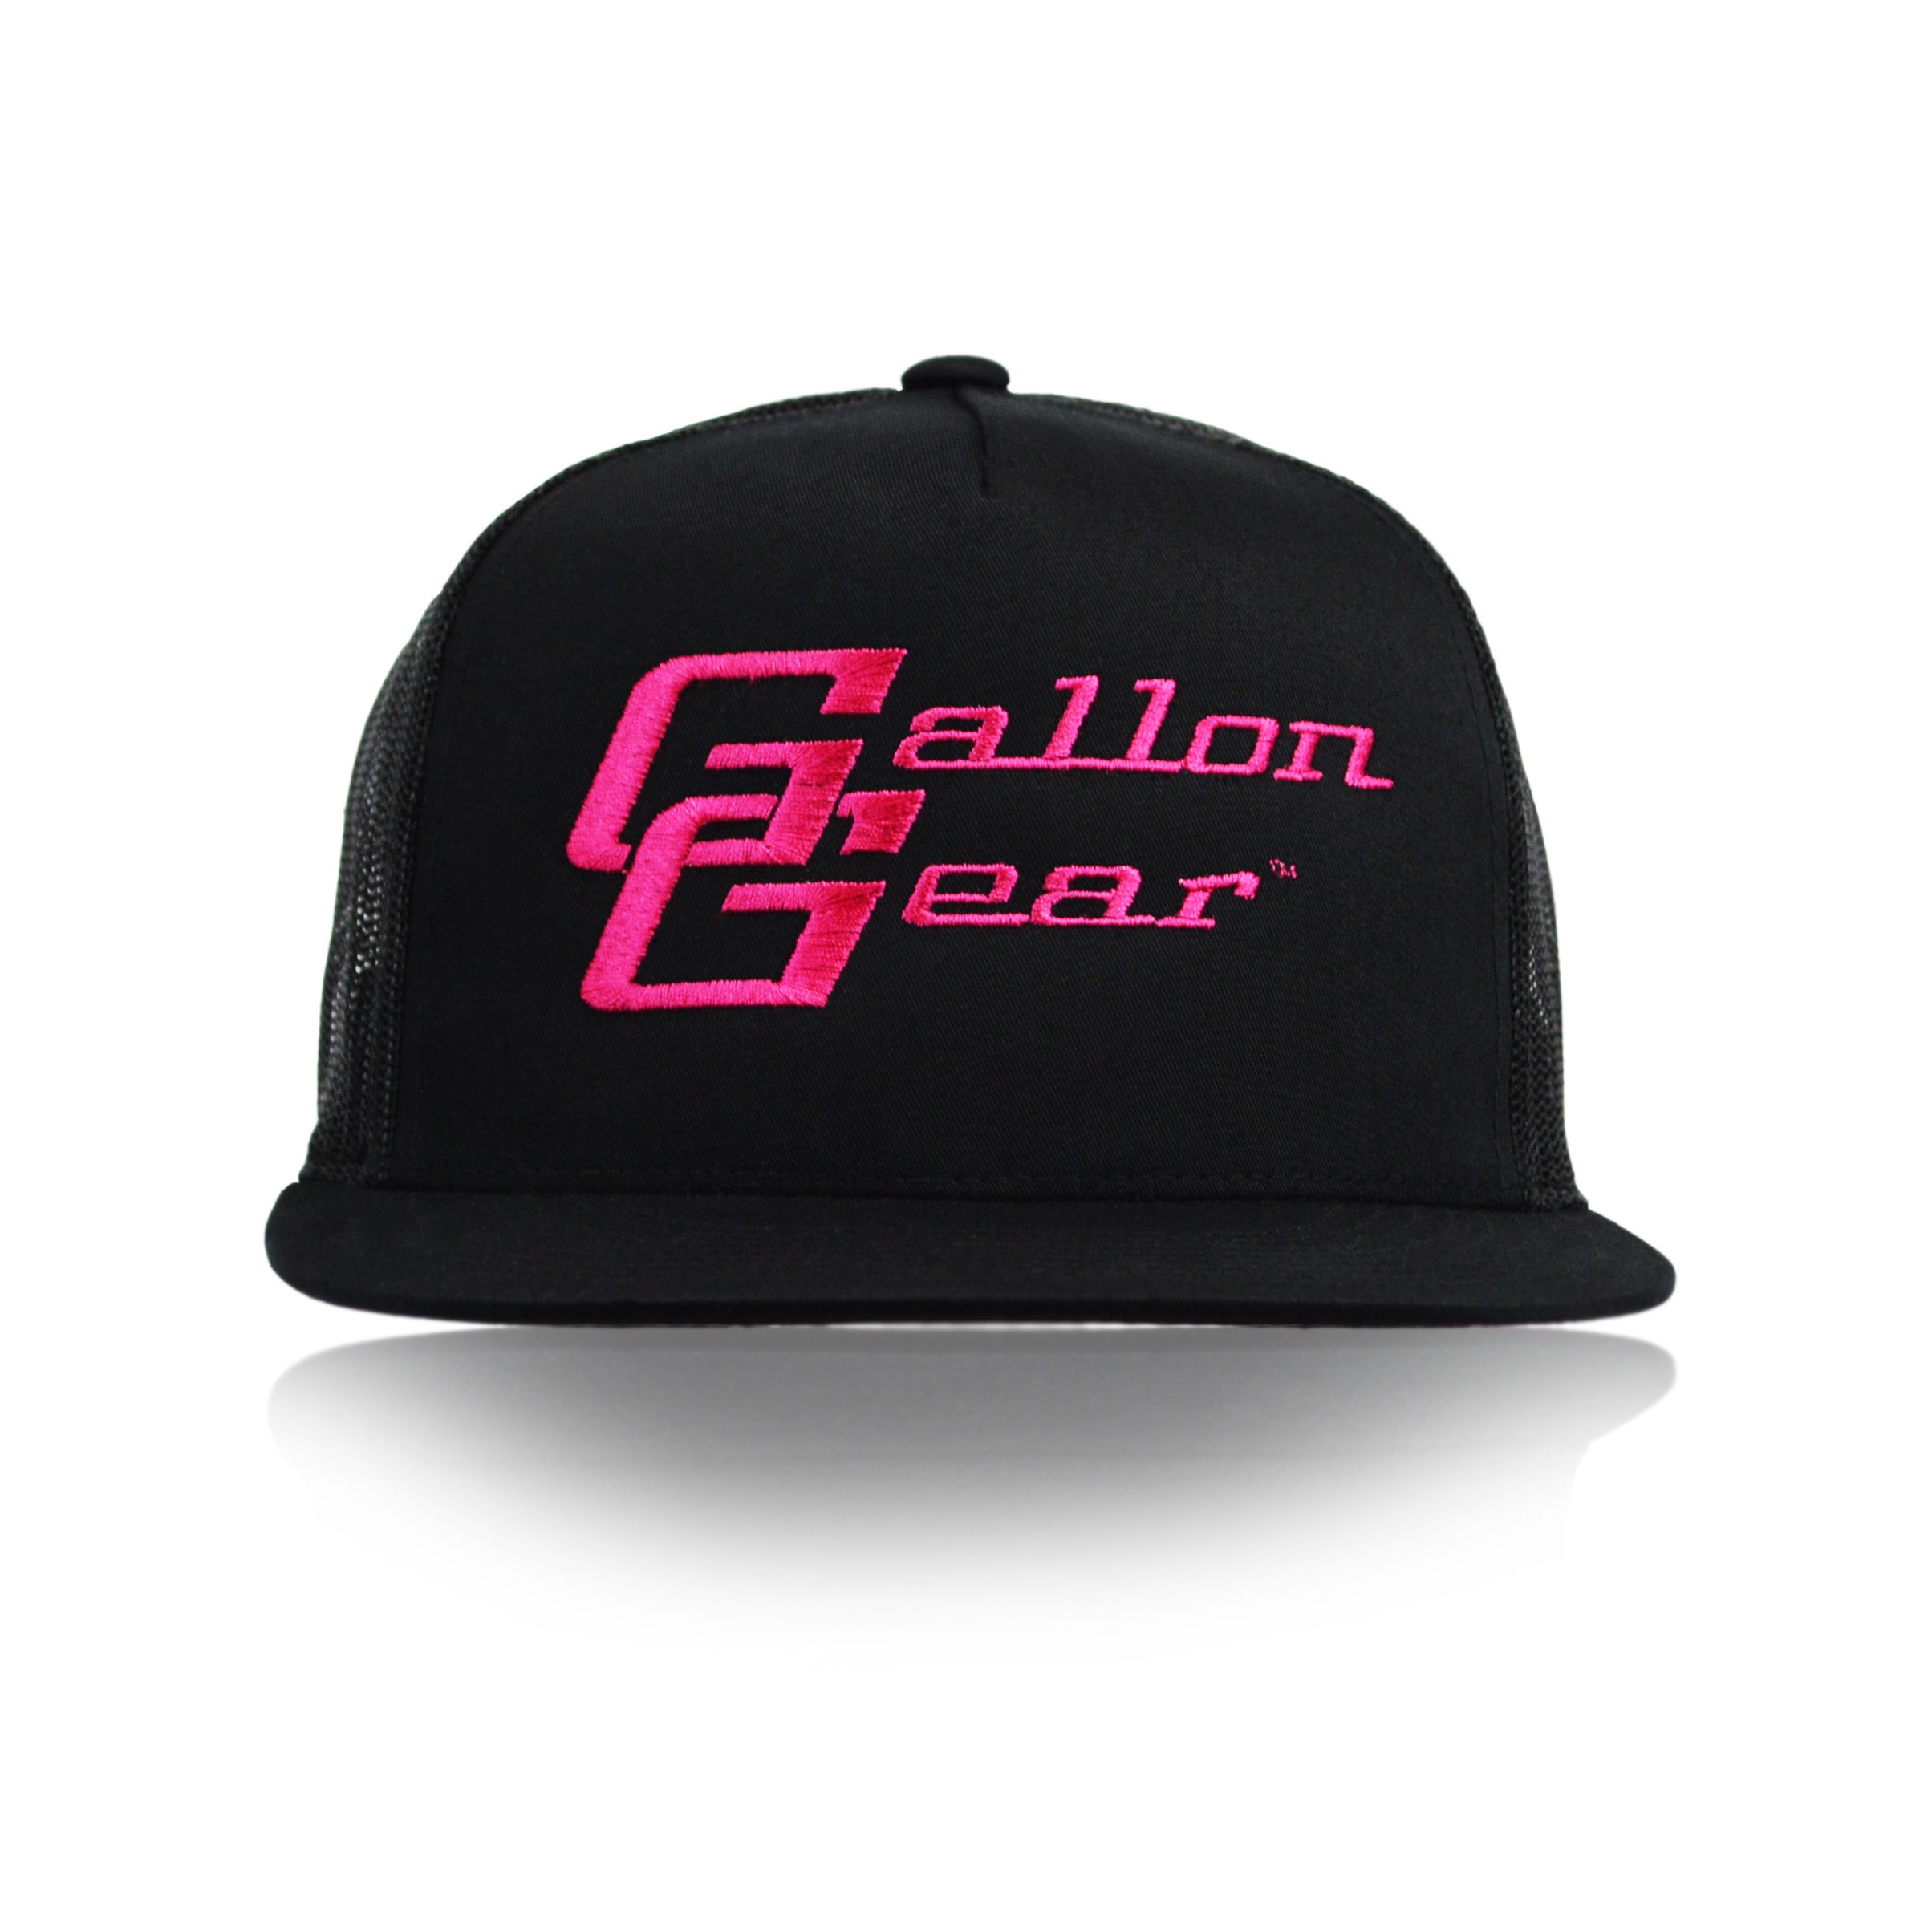 Black/ Black Mesh with Pink Logo